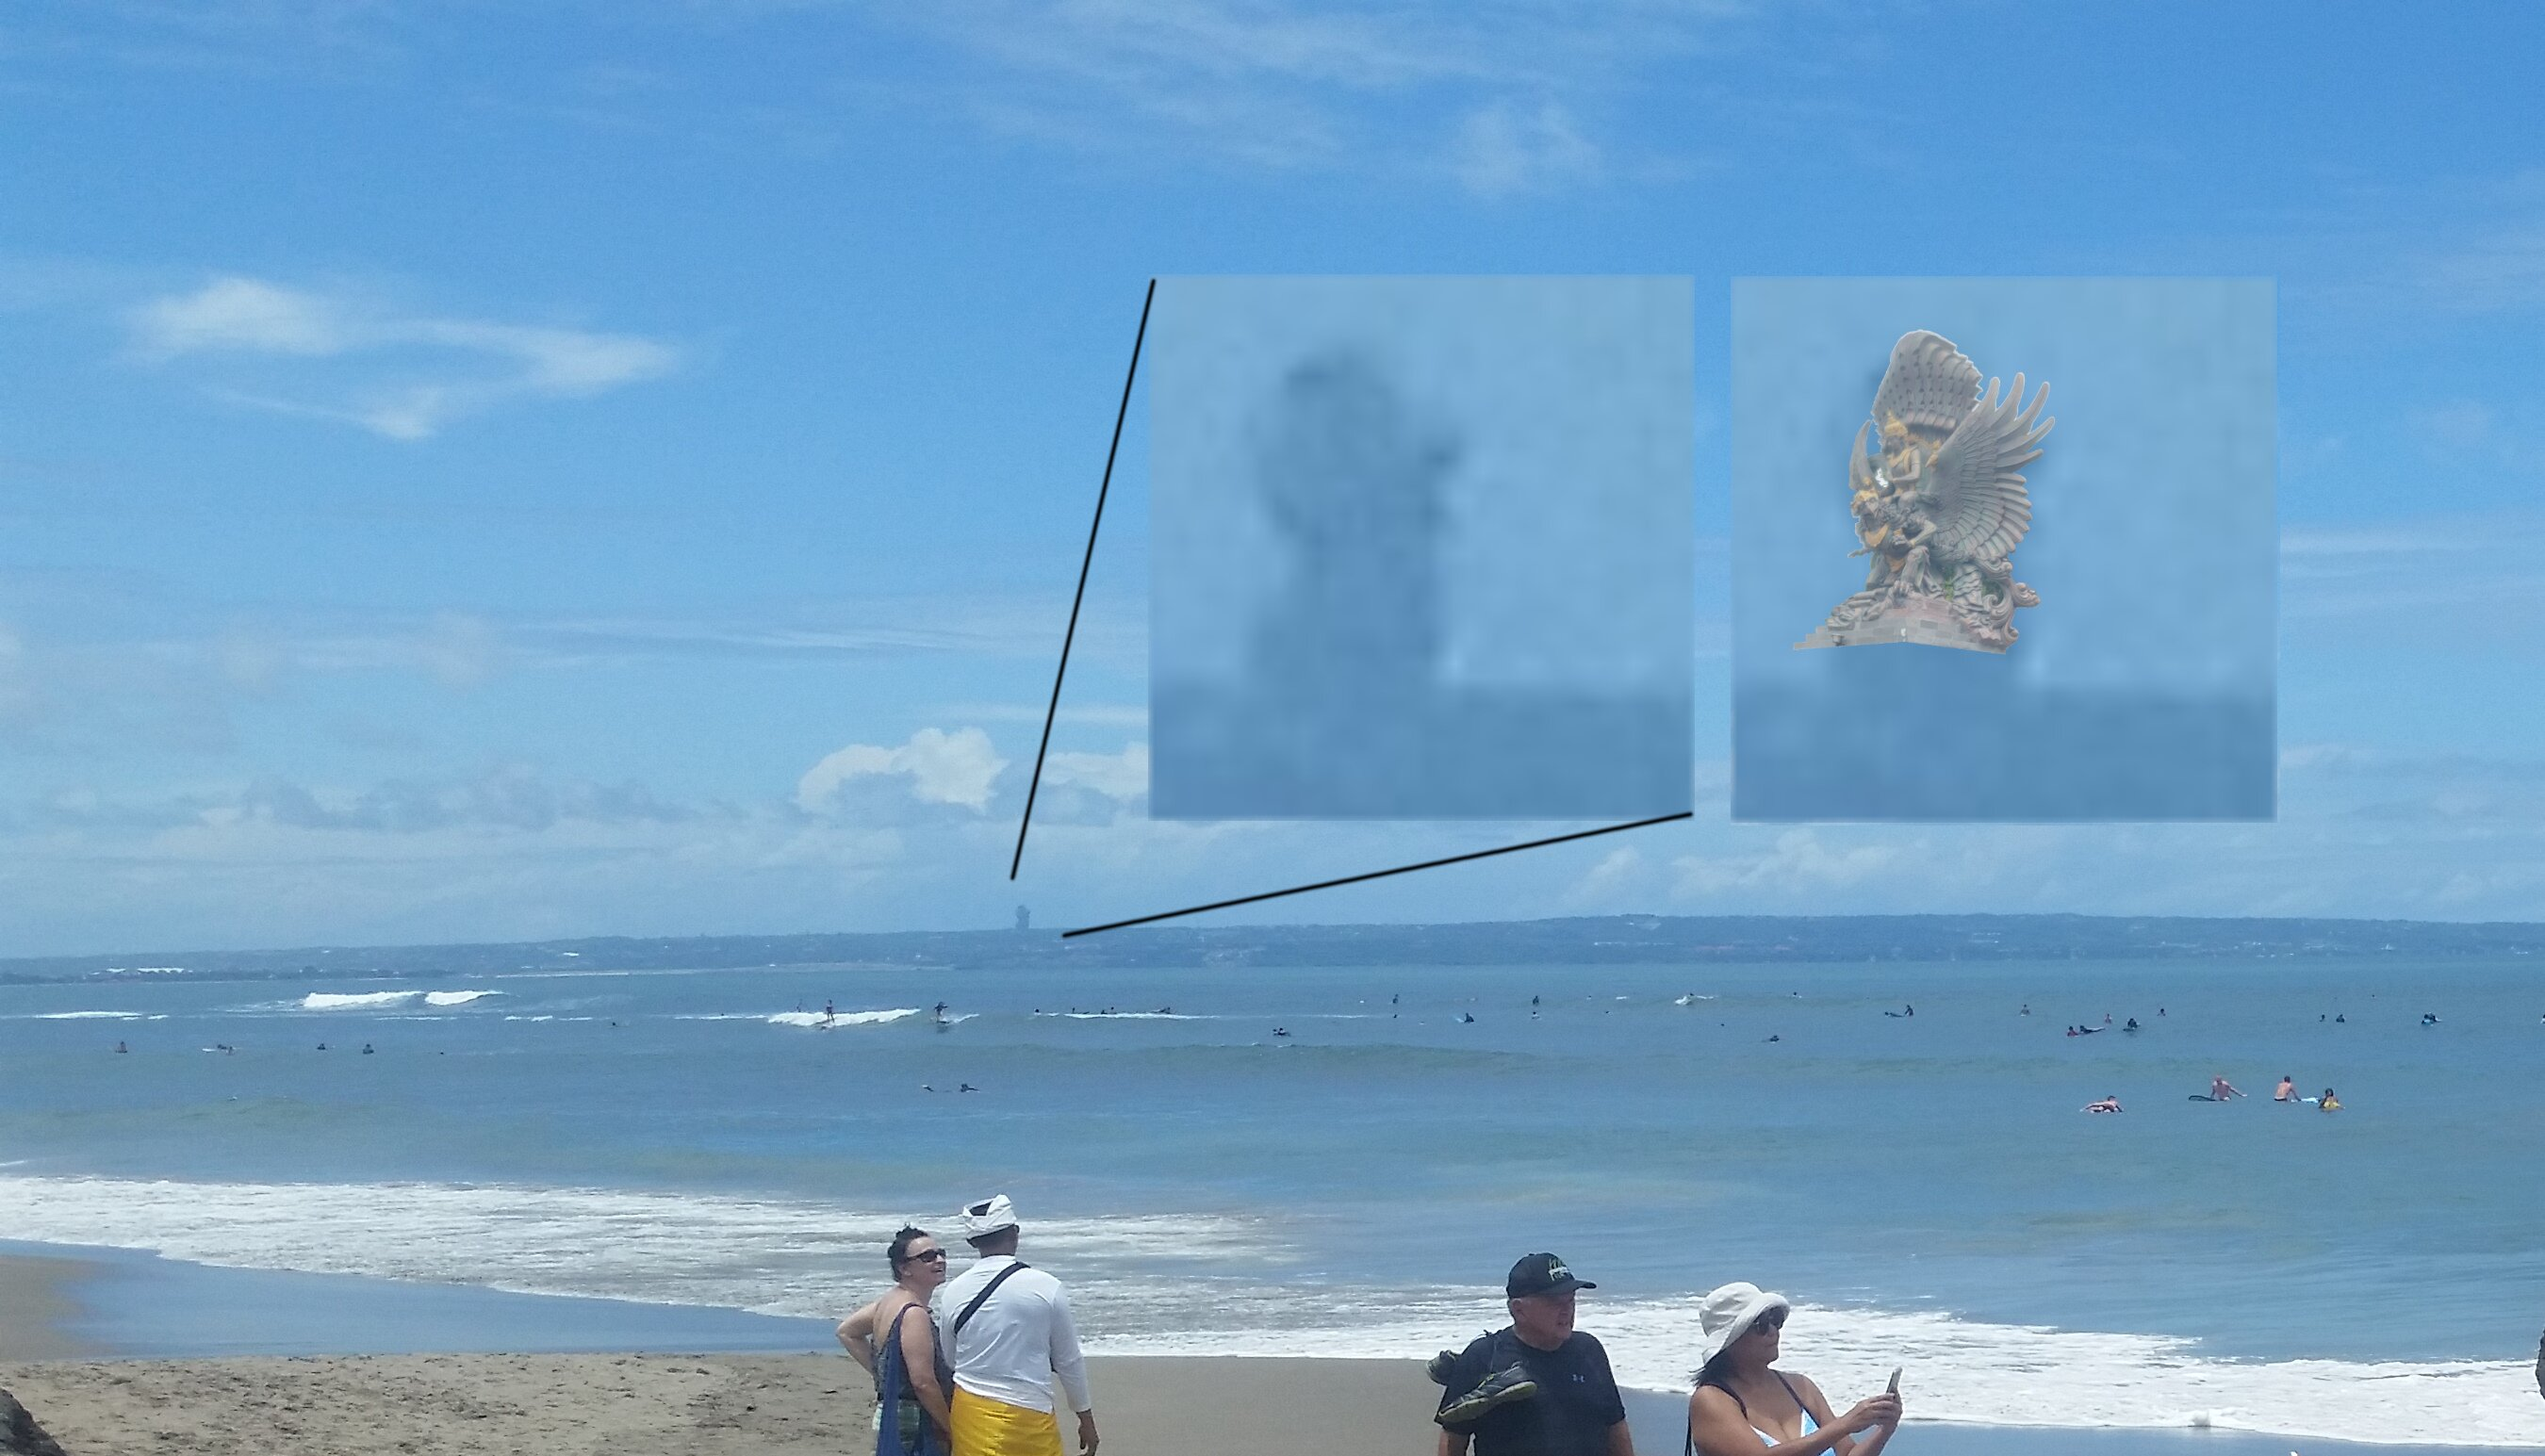 I zoomed and edited this picture for you so that you can get an idea of how GWK looks from Canggu.